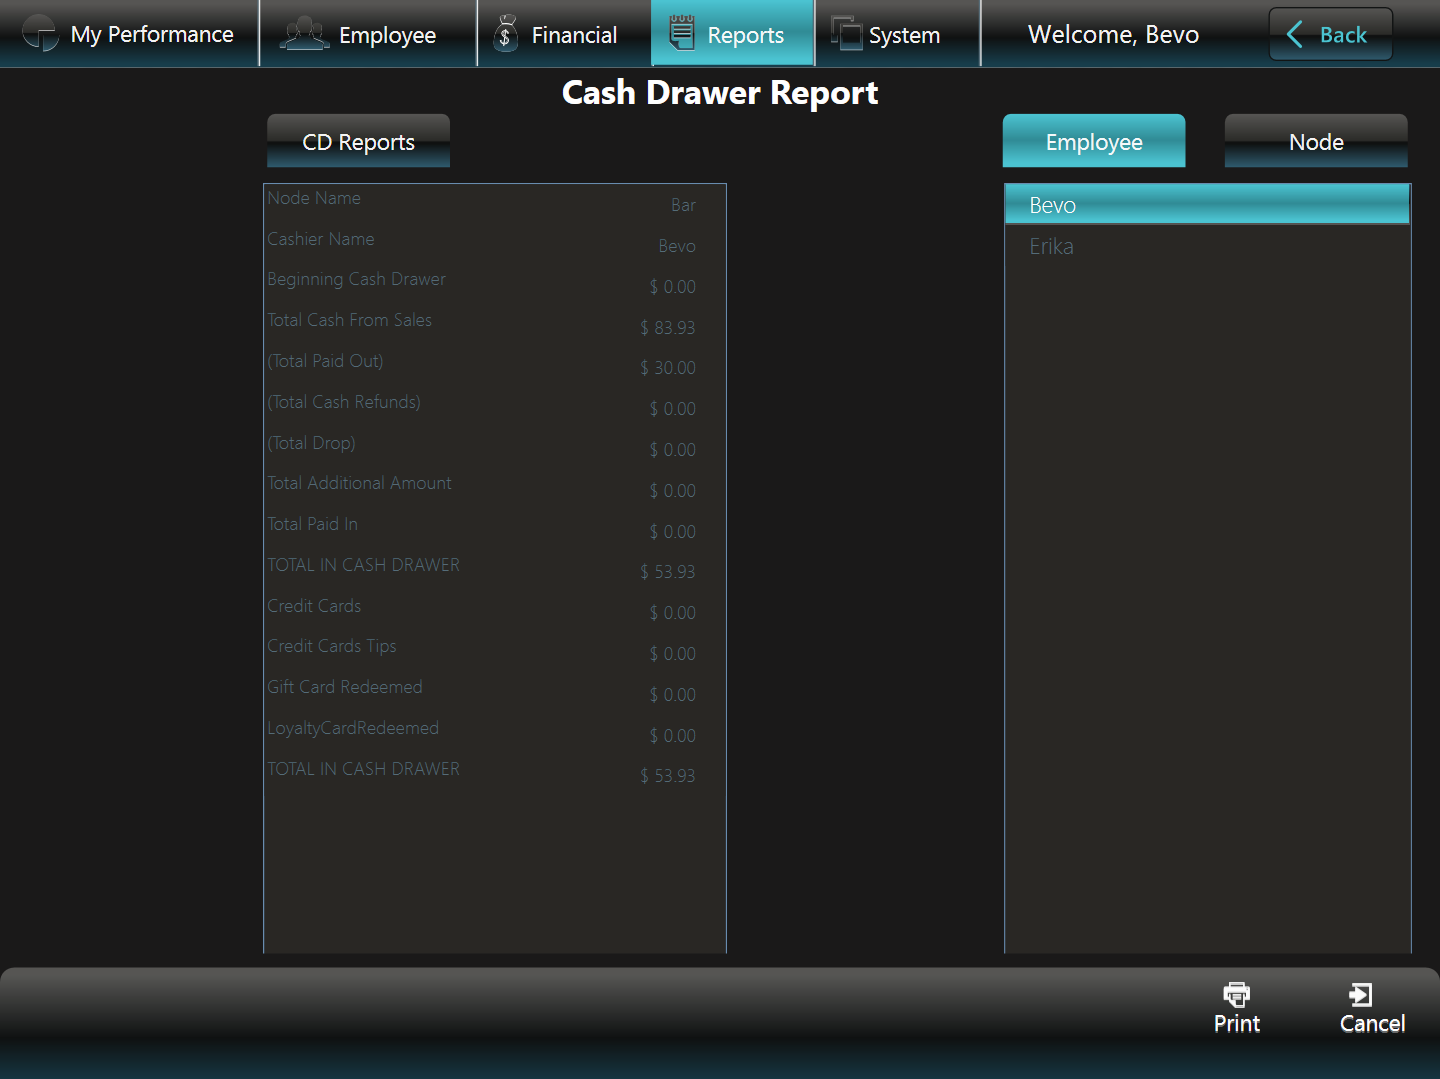 Cash Drawer Report - Employee